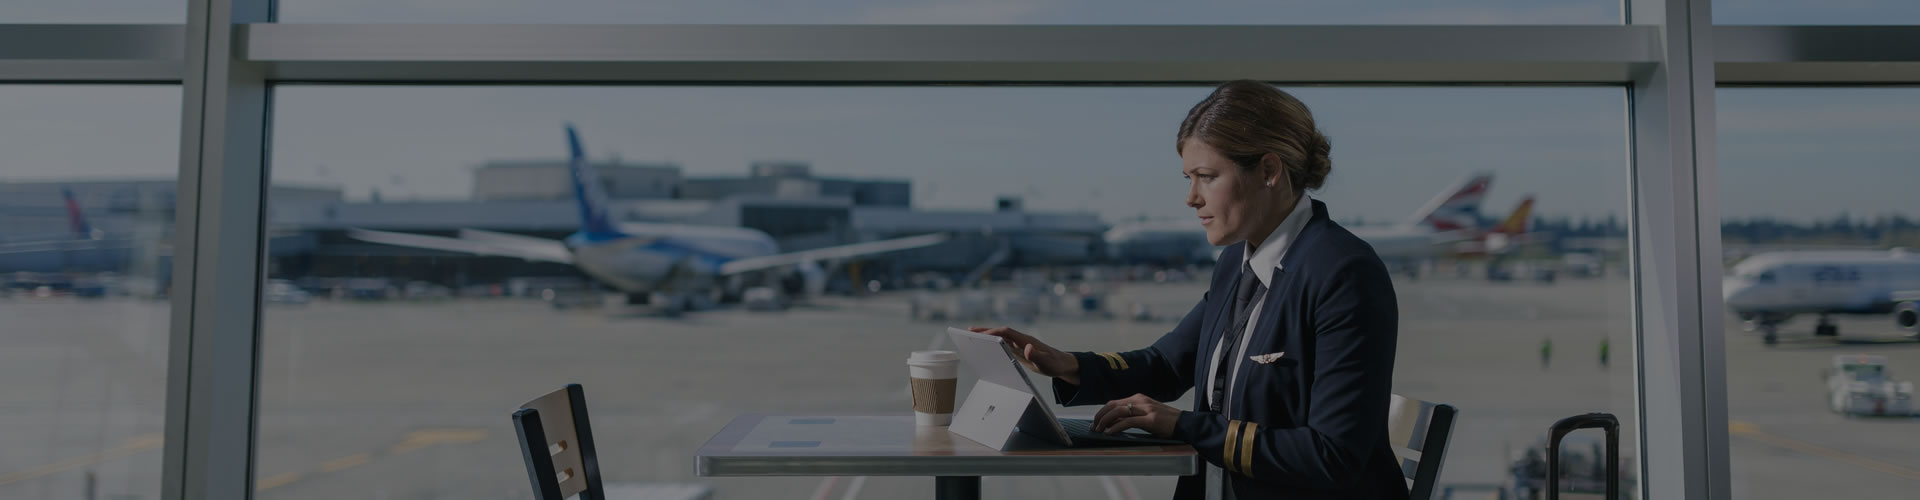 Image of a woman using a tablet at an airport